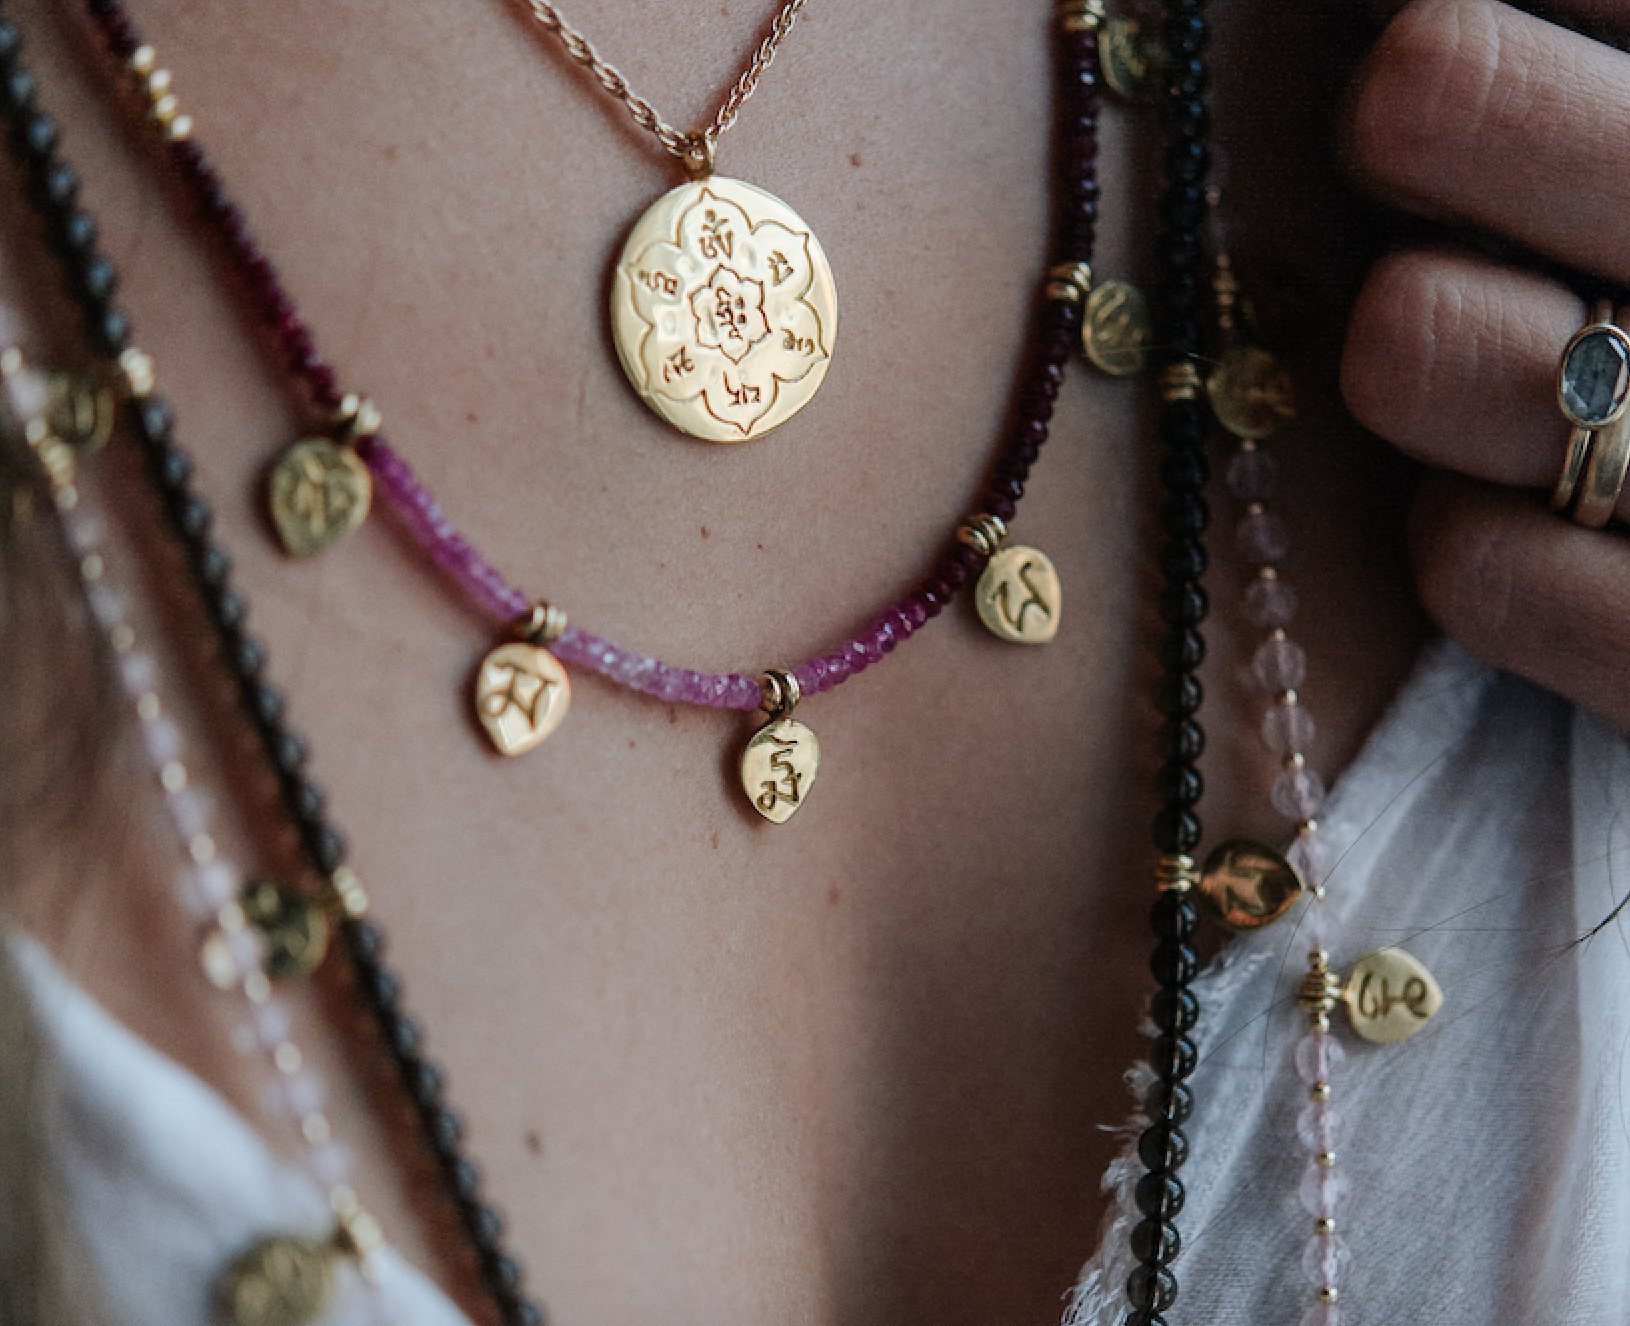 OM MANI PADME HUM MANTRA NECKLACE ON RUBIES